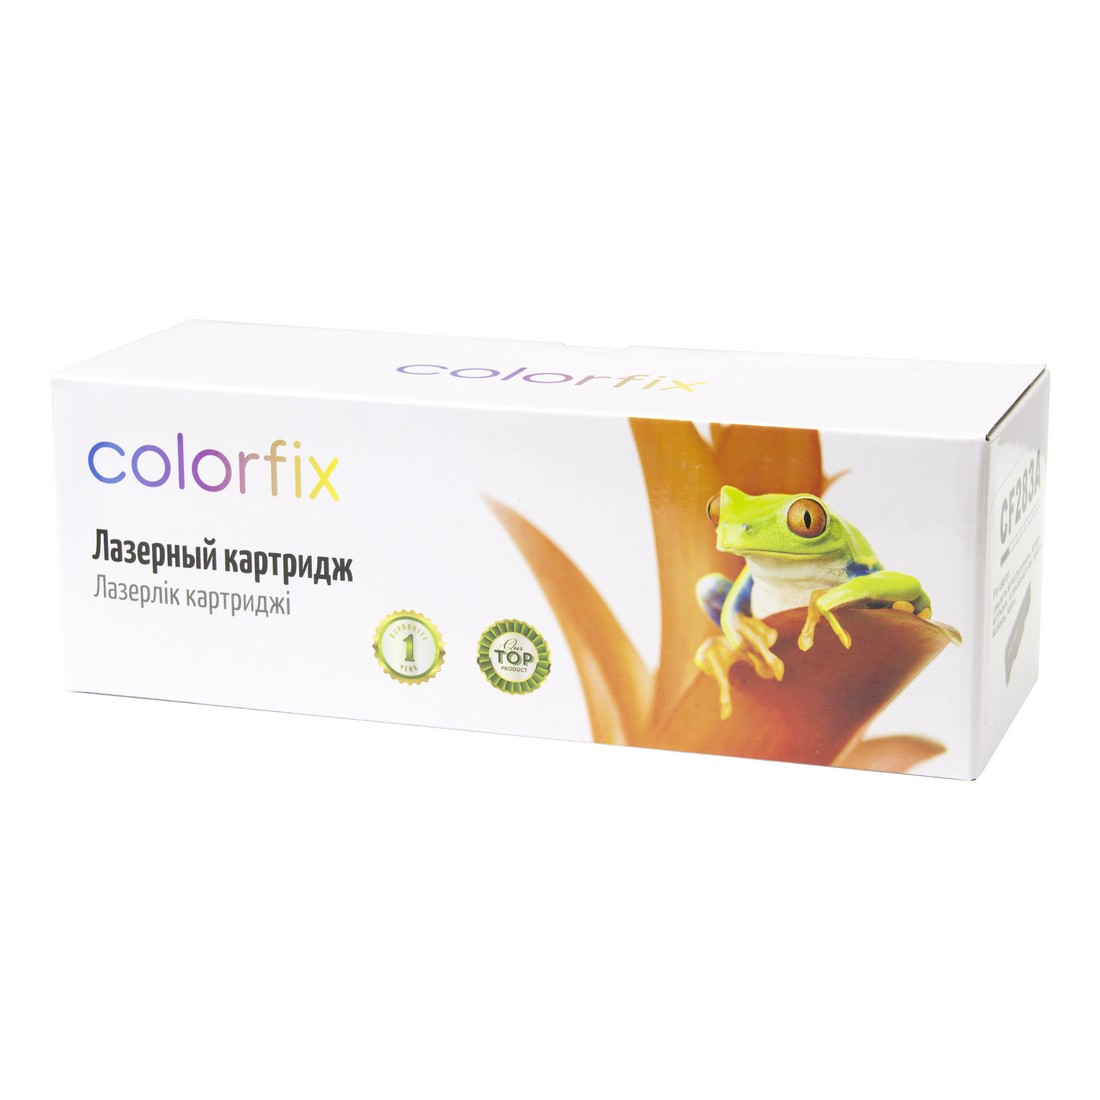 Картридж, Colorfix, CF283A, Для принтеров HP LaserJet Pro M125/M126/M127/M128/M201/M225, 1500 страниц.